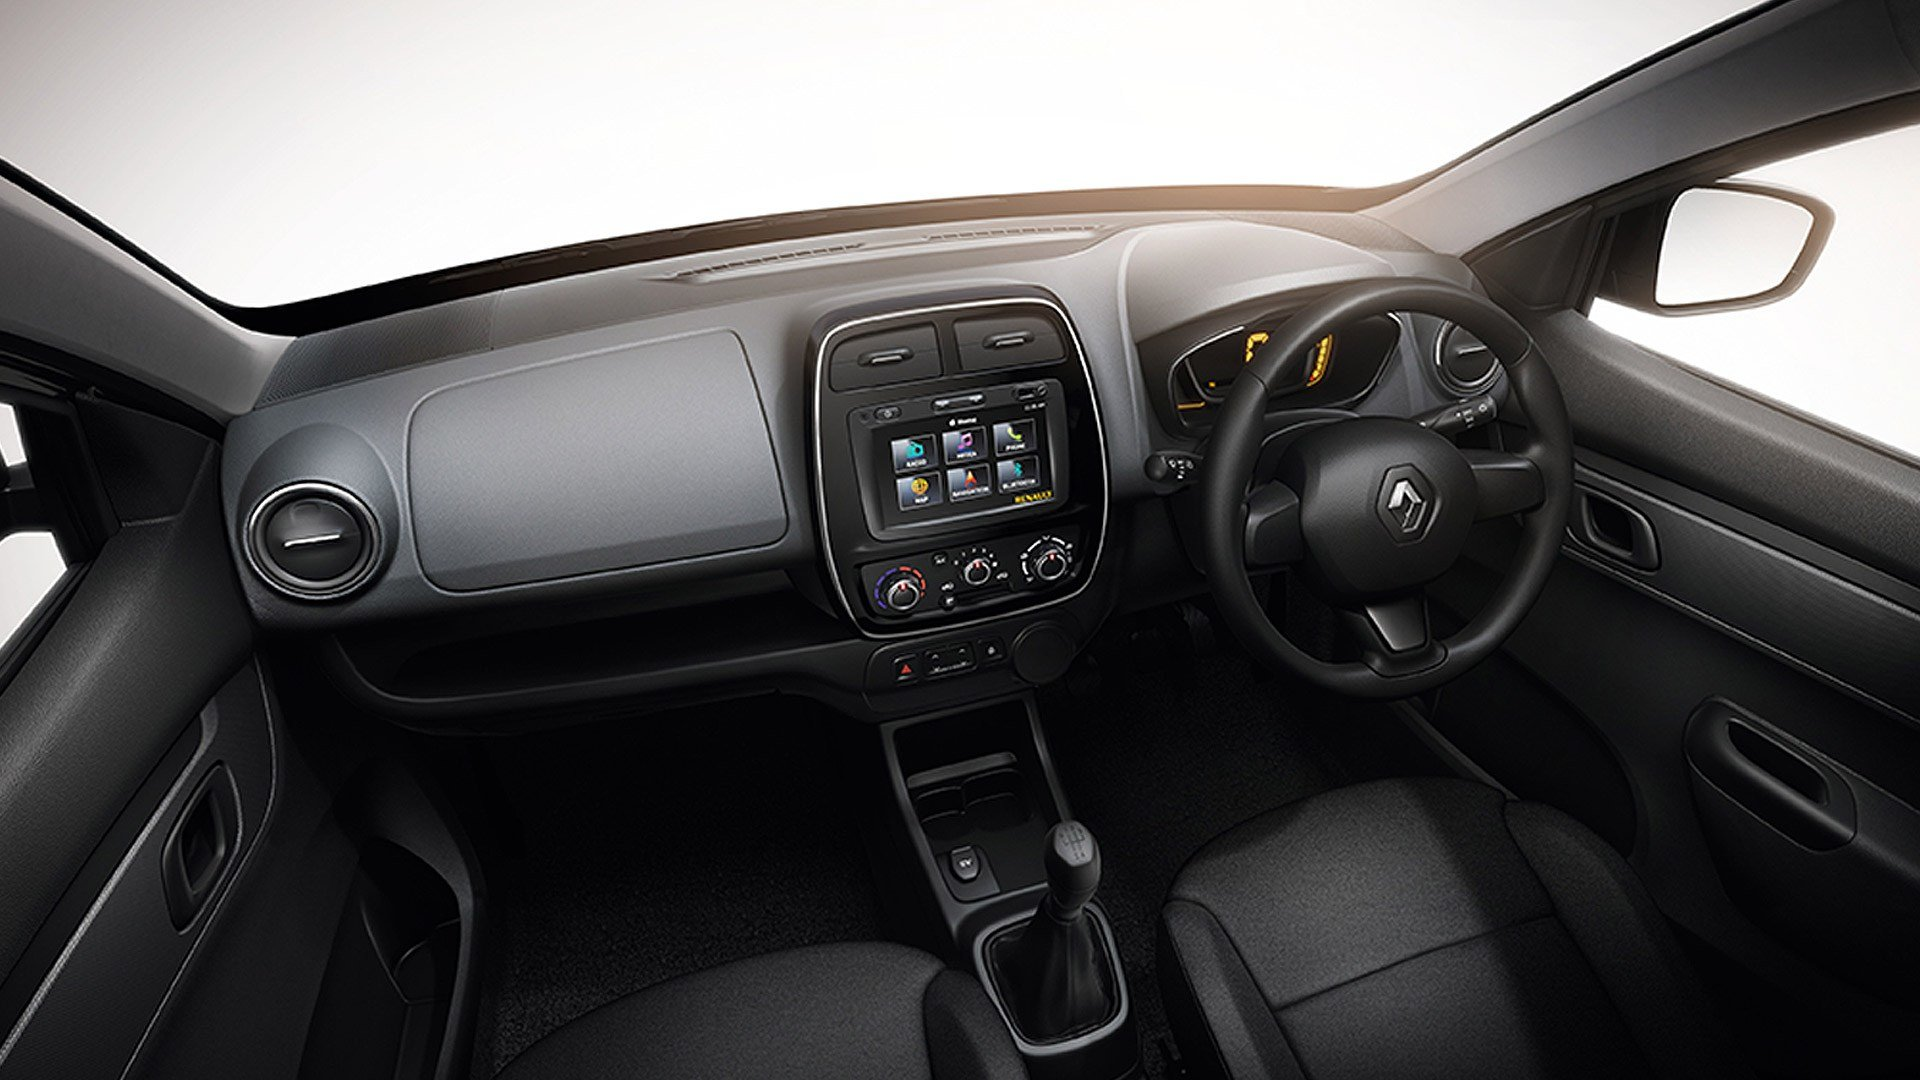 New Renault Kwid 2015 Std Interior Car Photos Overdrive On This Month